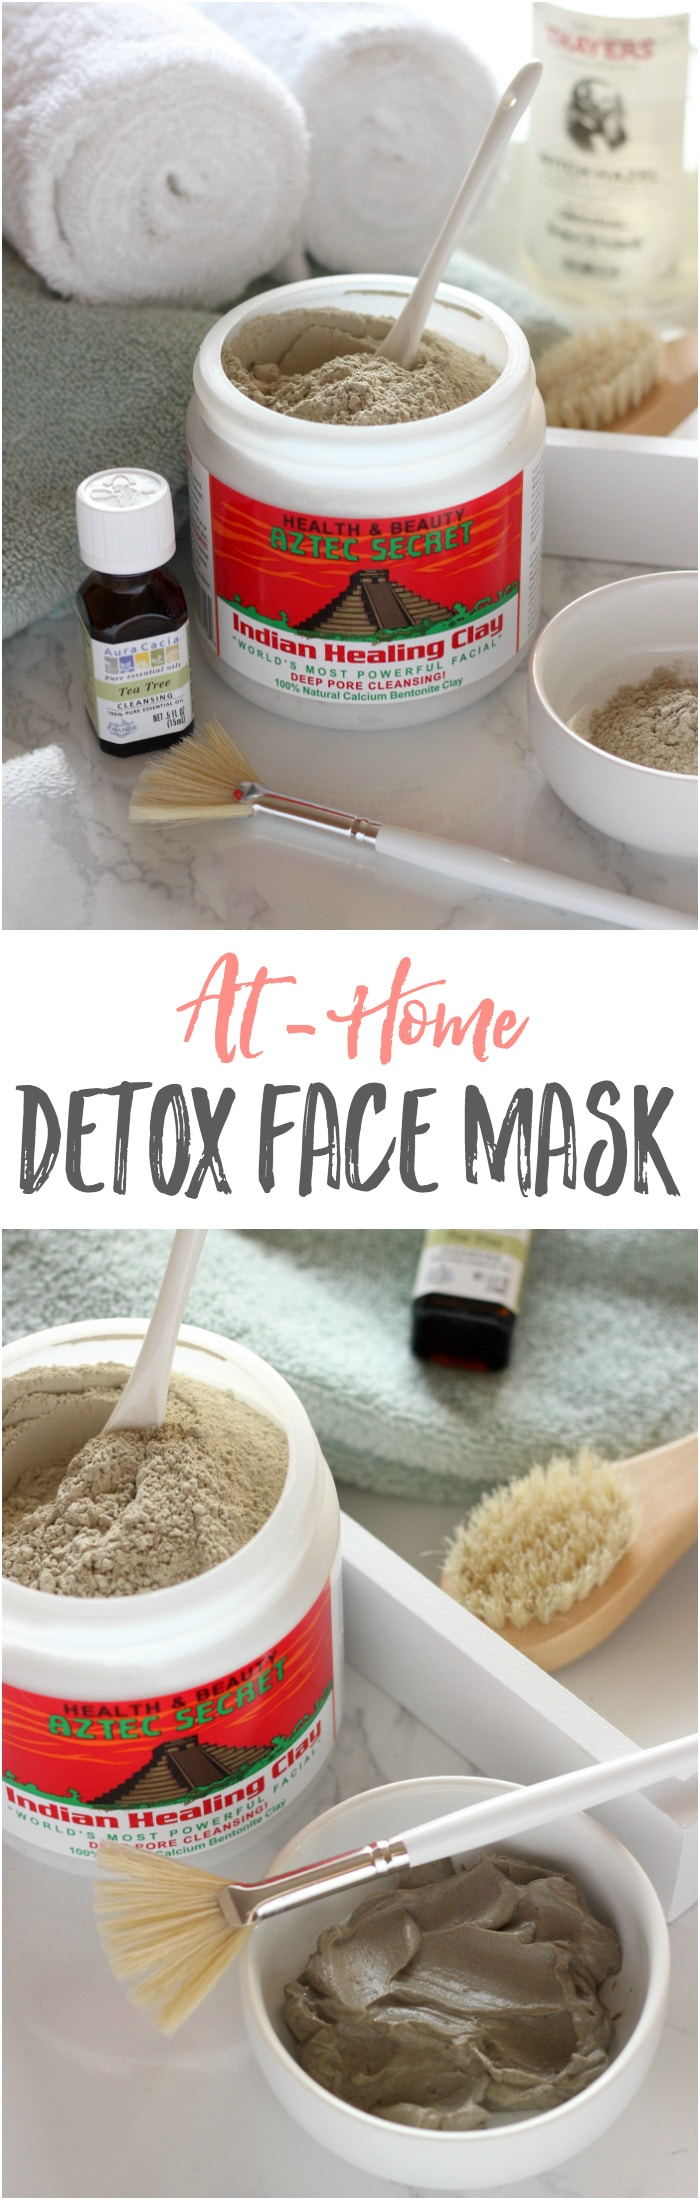 detox-face-mask-pin